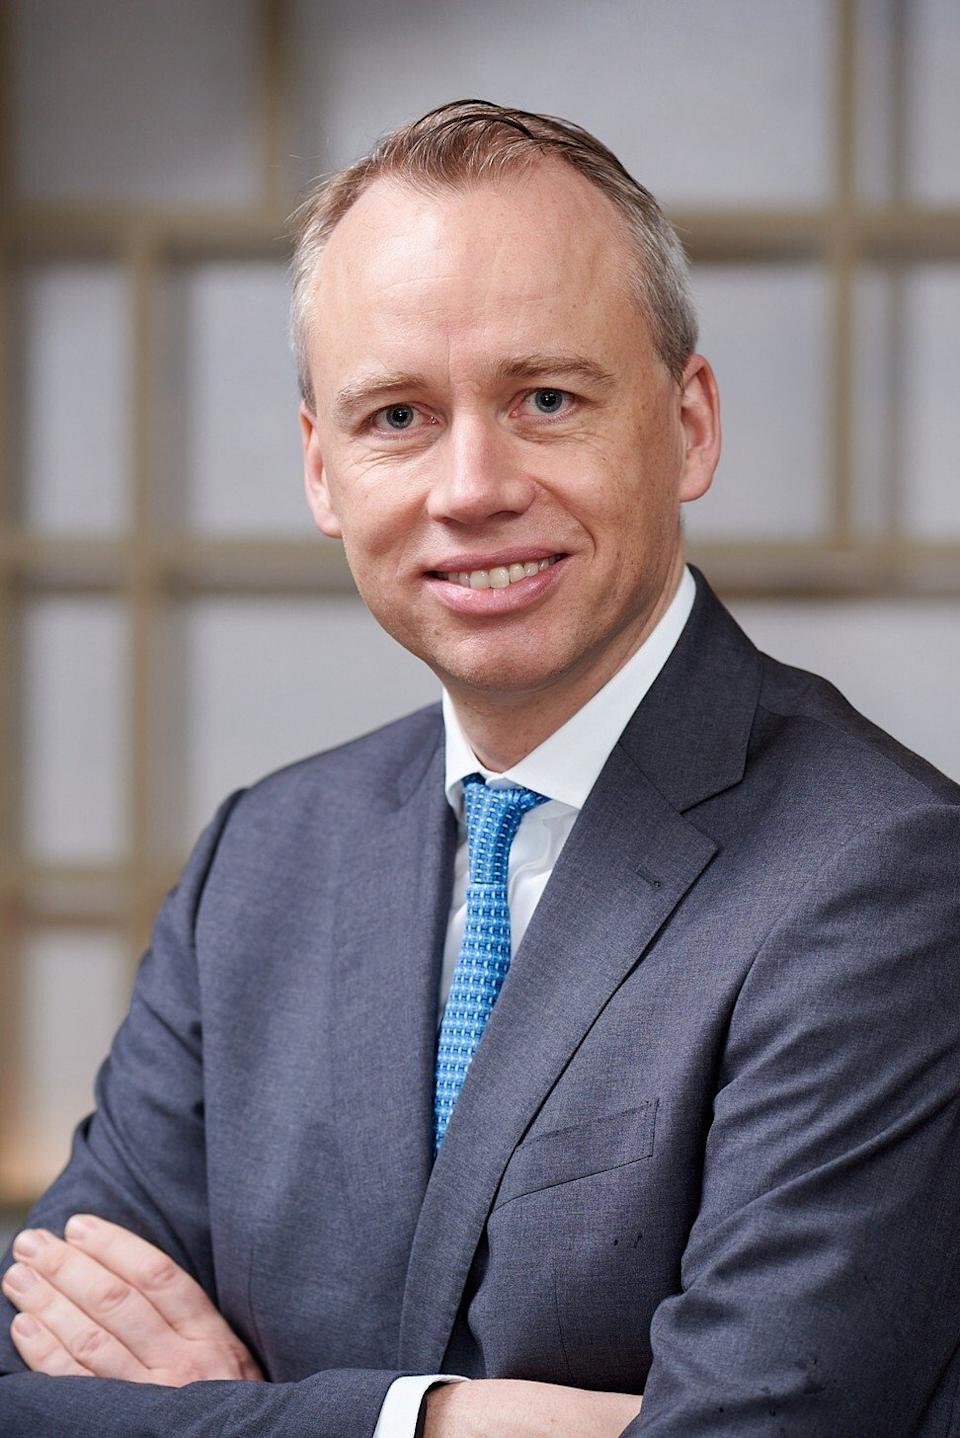 Alexander von zur Muehlen, Deutsche Bank's Asia-Pacific CEO, was one of the key architect's of the lender's massive restructuring in 2019. Photo: Handout